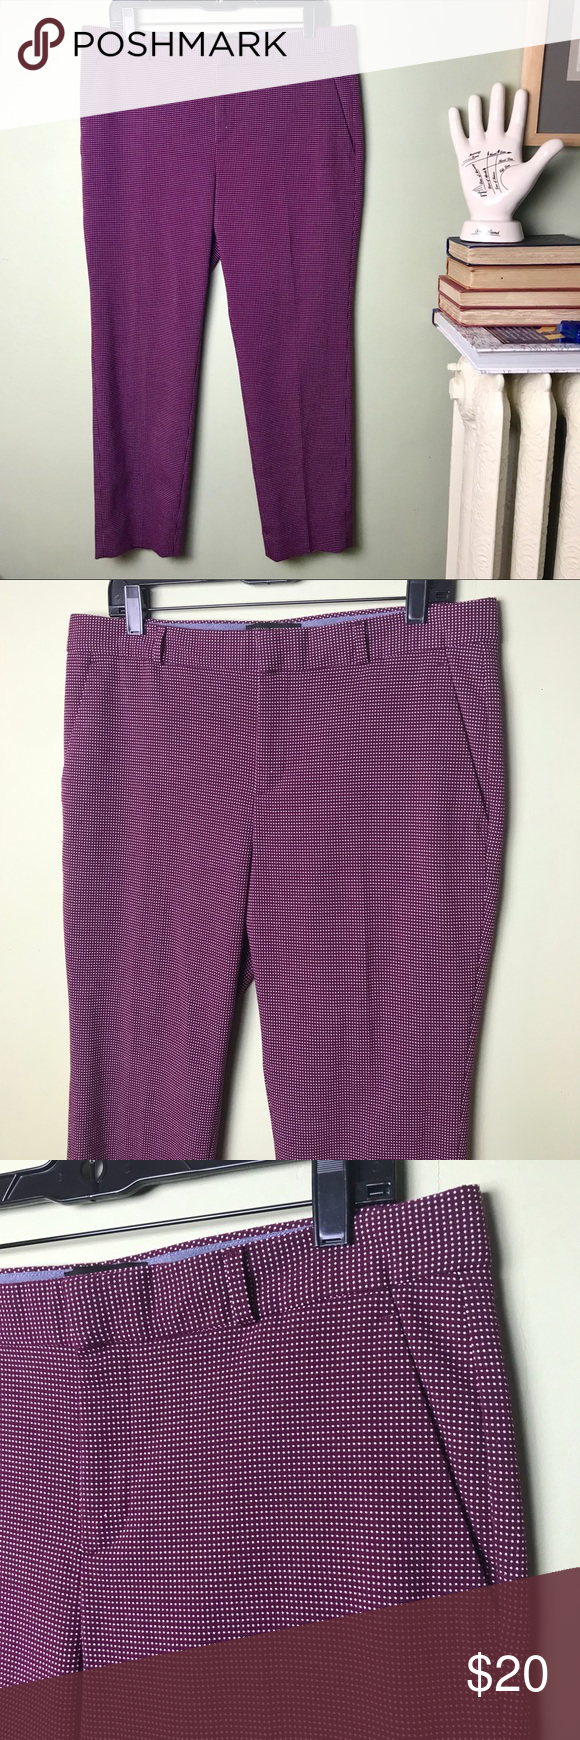 Banana Republic Avery Cropped Pants Deep Burgandy Excellent previously owned con...